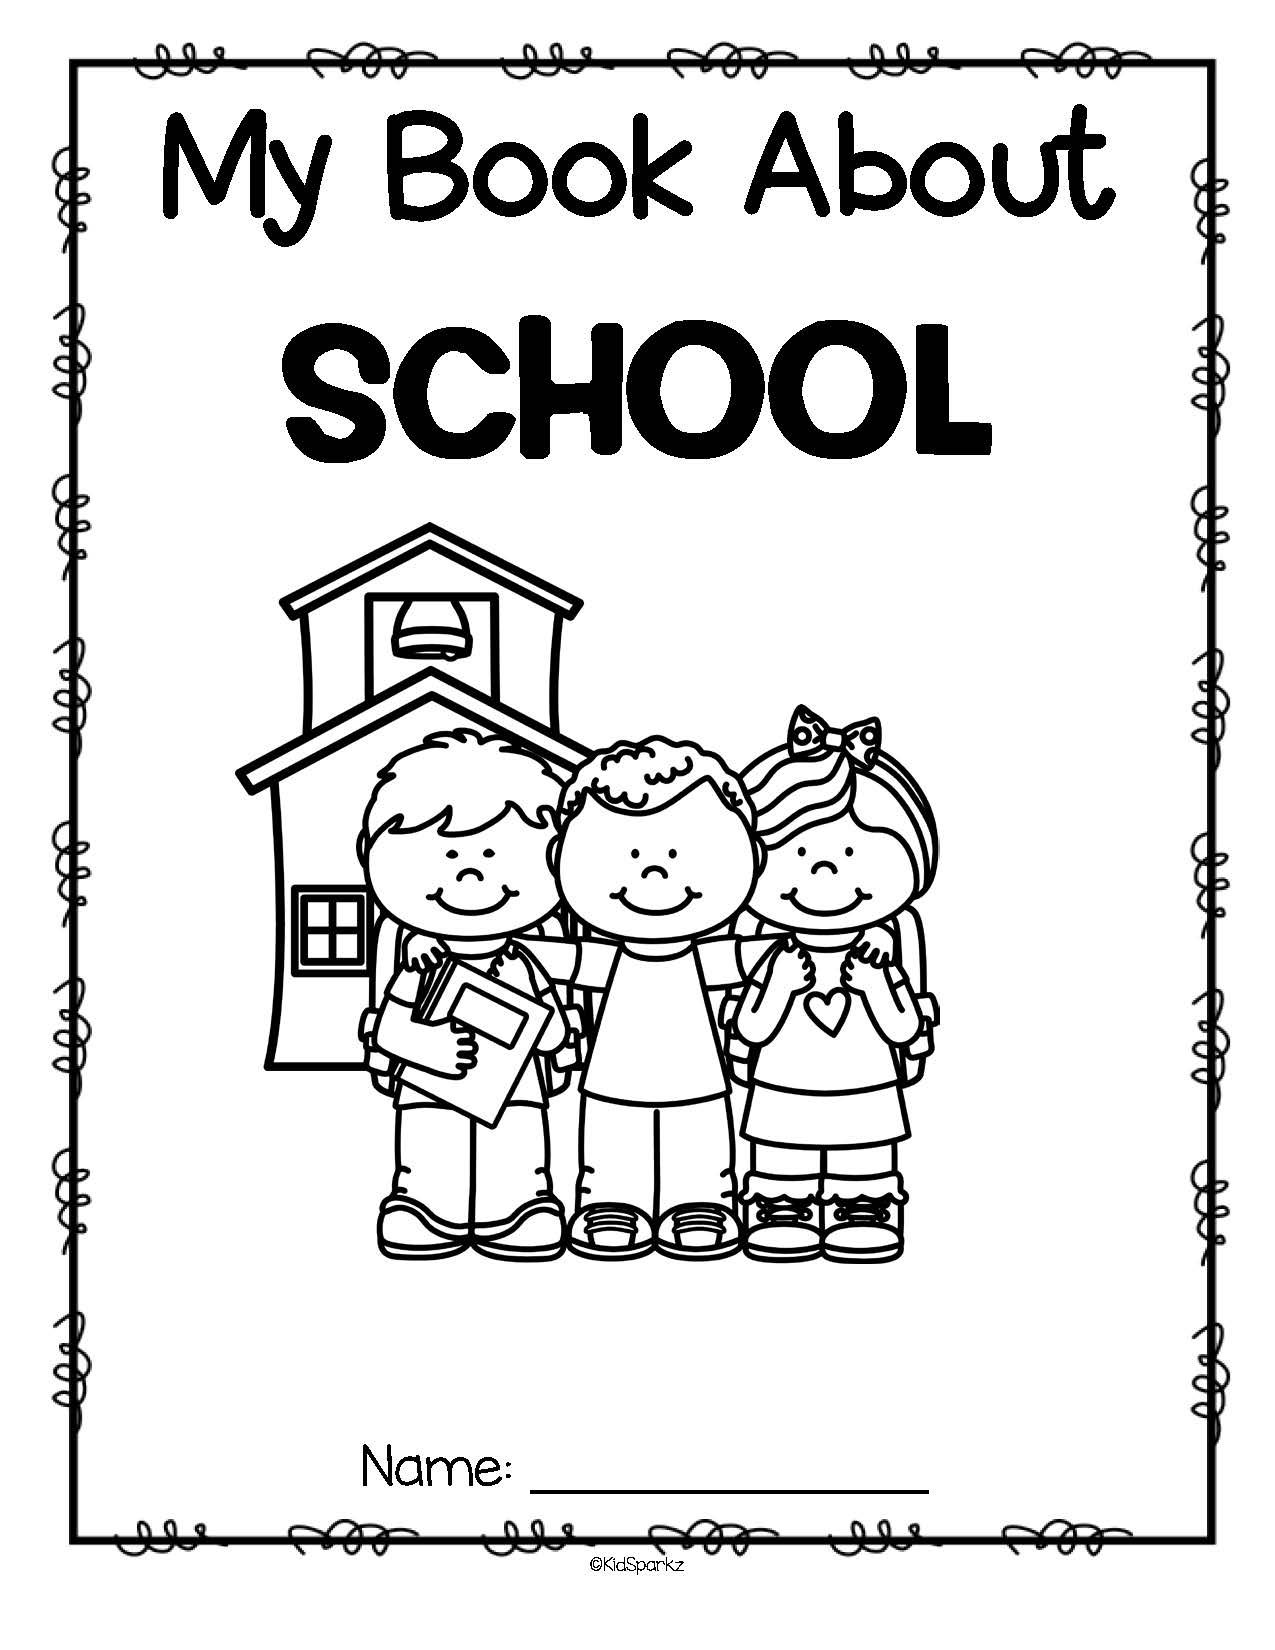 Back to School Draw and Color Book Activity Printables